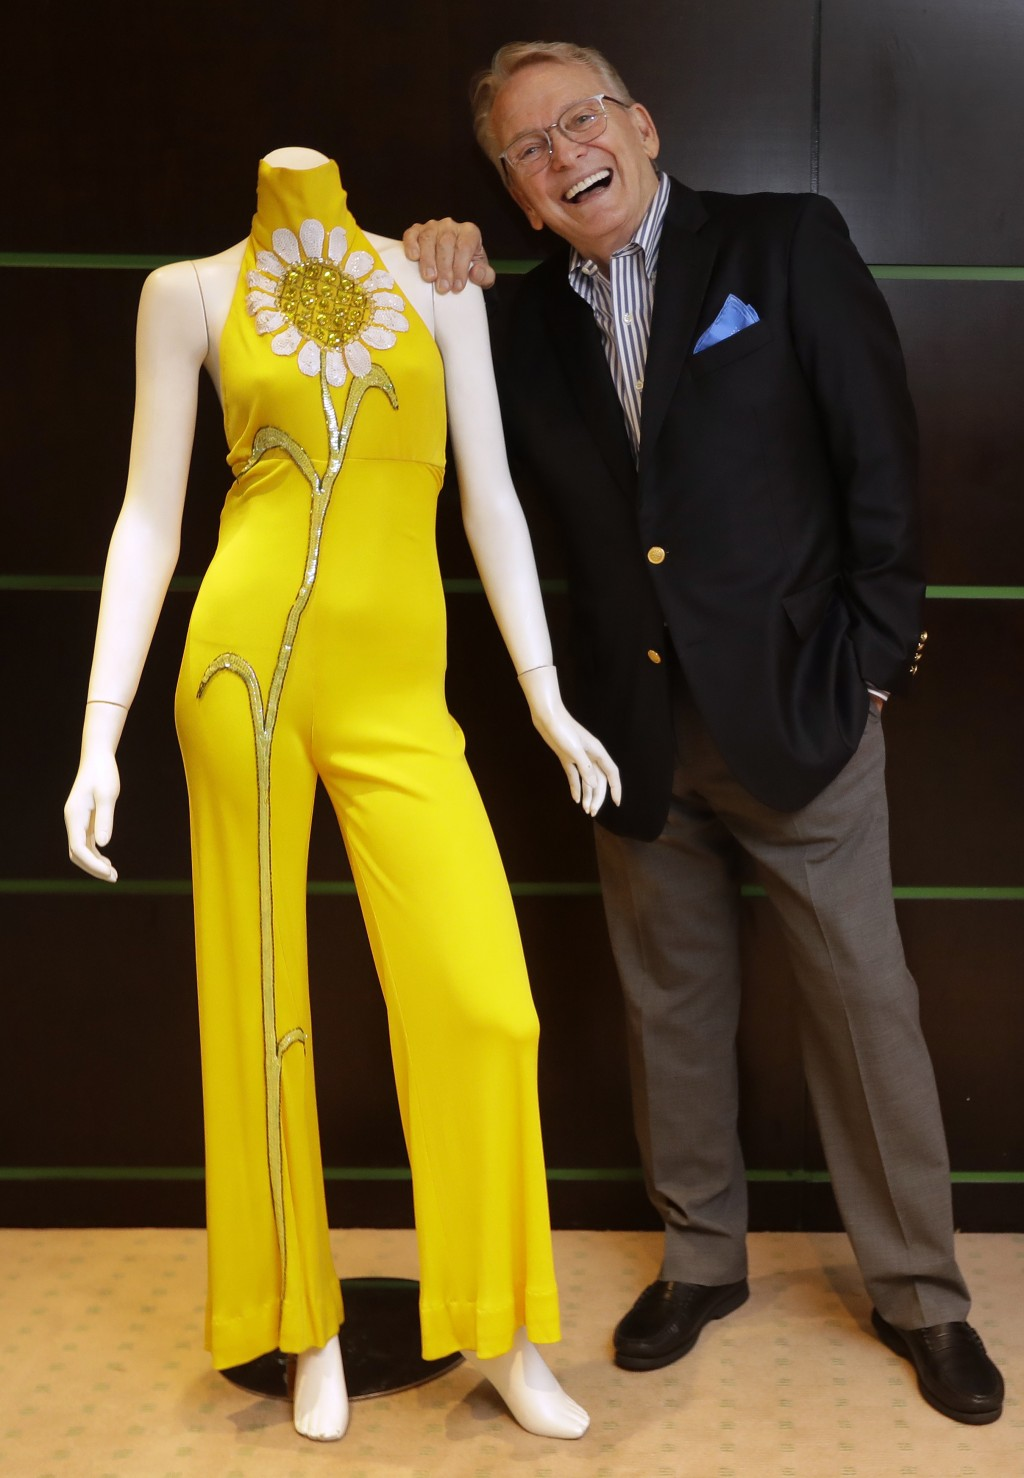 Fashion and Costume Designer Bob Mackie poses with one of his iconic designs, a marigold jersey jumpsuit worn by Cher between 1971-1976, in London, Th...